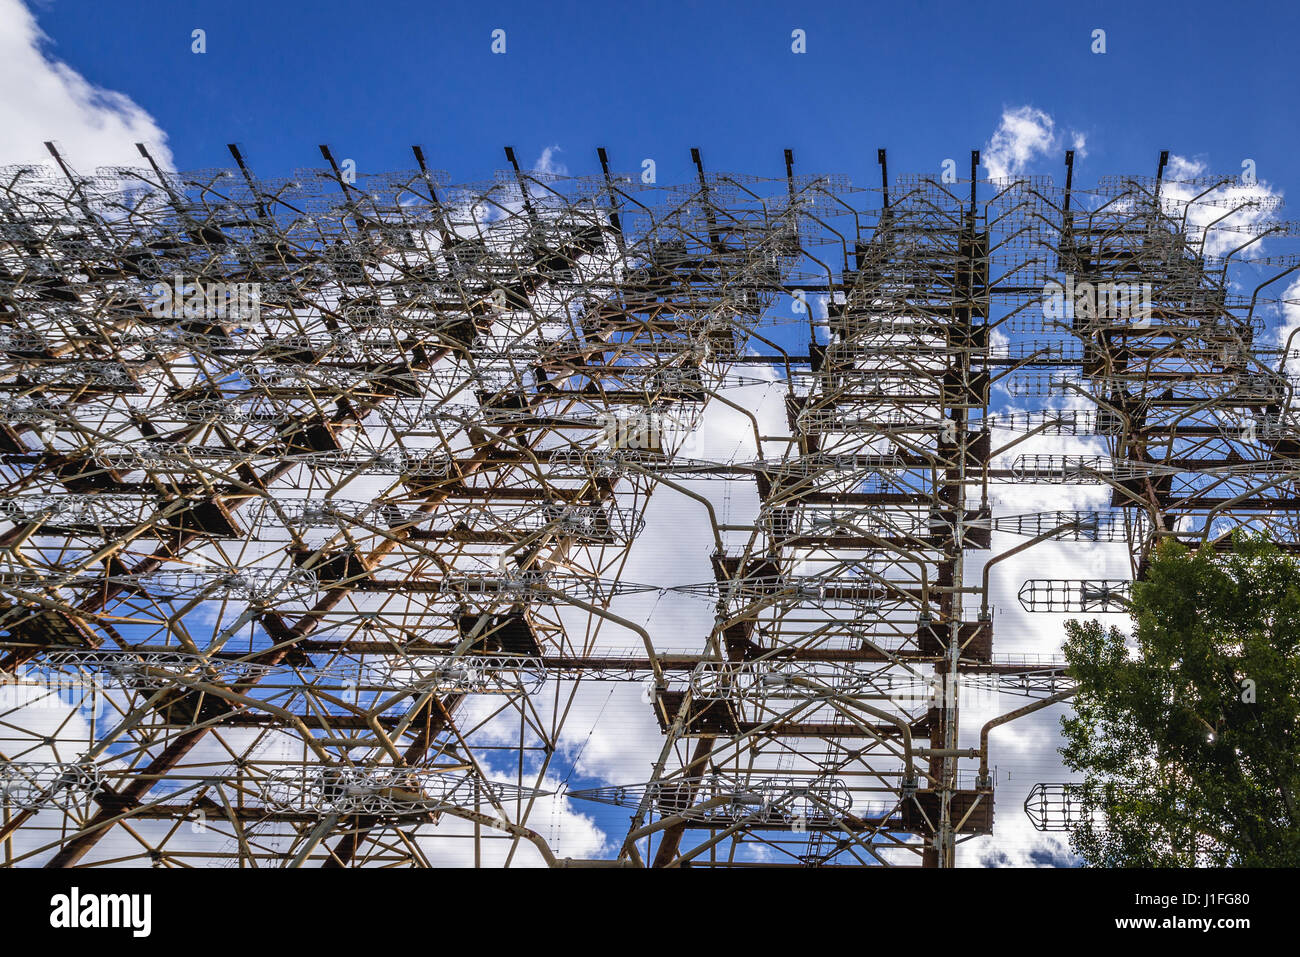 Ground view of old Soviet radar system called Duga near Cherobyl town in Chernobyl Nuclear Power Plant Zone of Alienation Stock Photo